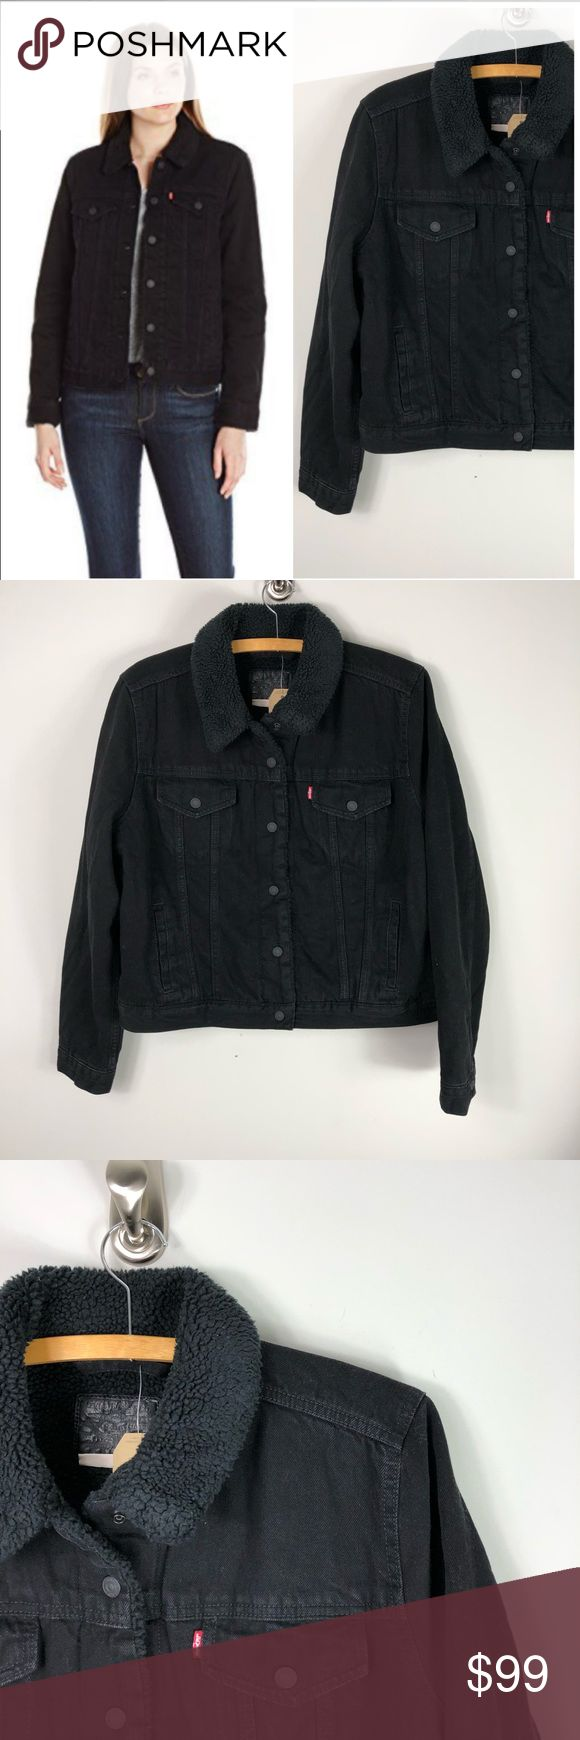 NEW Levi's Denim Trucker Sherpa Jacket Black Jean NWT